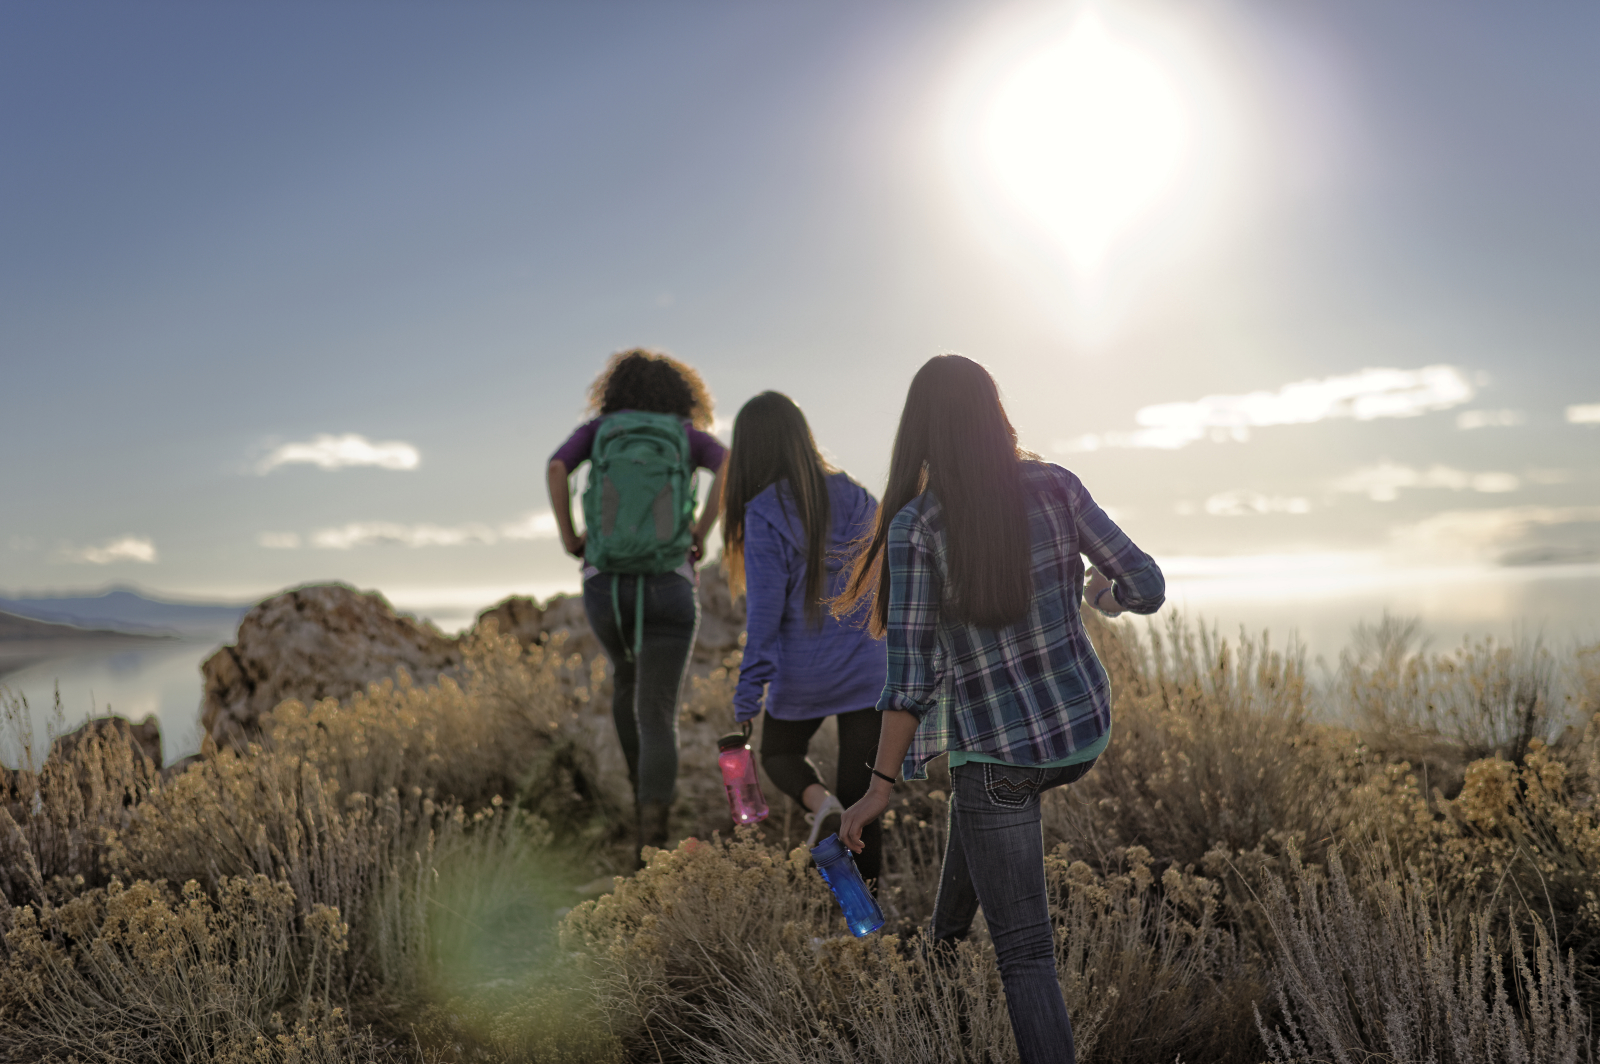 After an announcement in May 2018 that changes to child and youth activities were coming, the Church has clarified in a Sept. 21, 2018, email that there would still be camping and other outdoor activities in the new resources to be released in 2020.